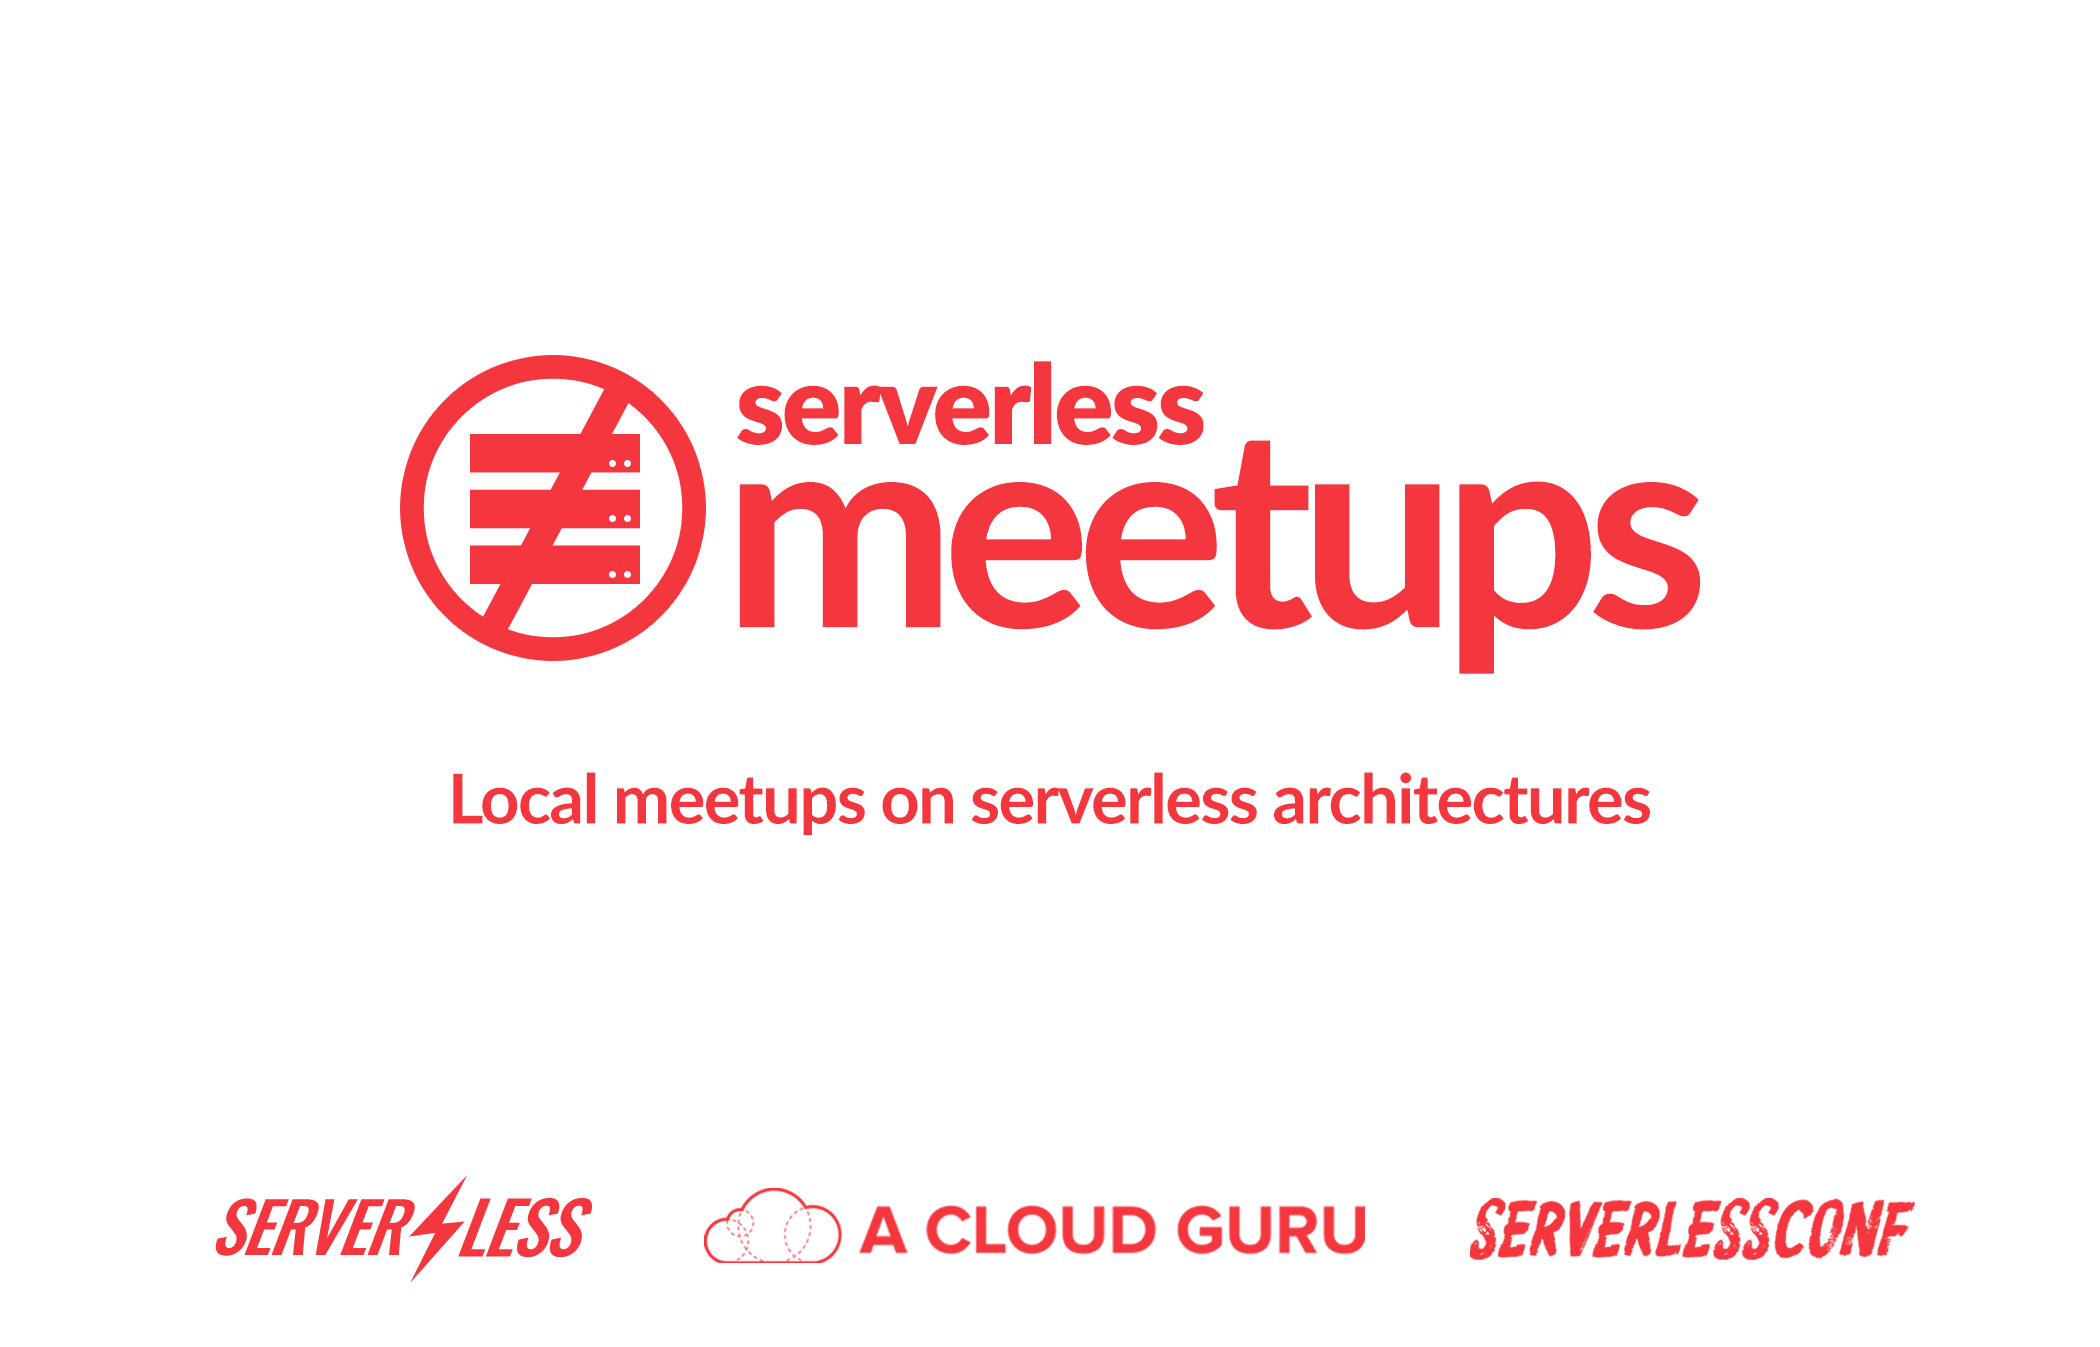 serverless meetups learn workshops architectures